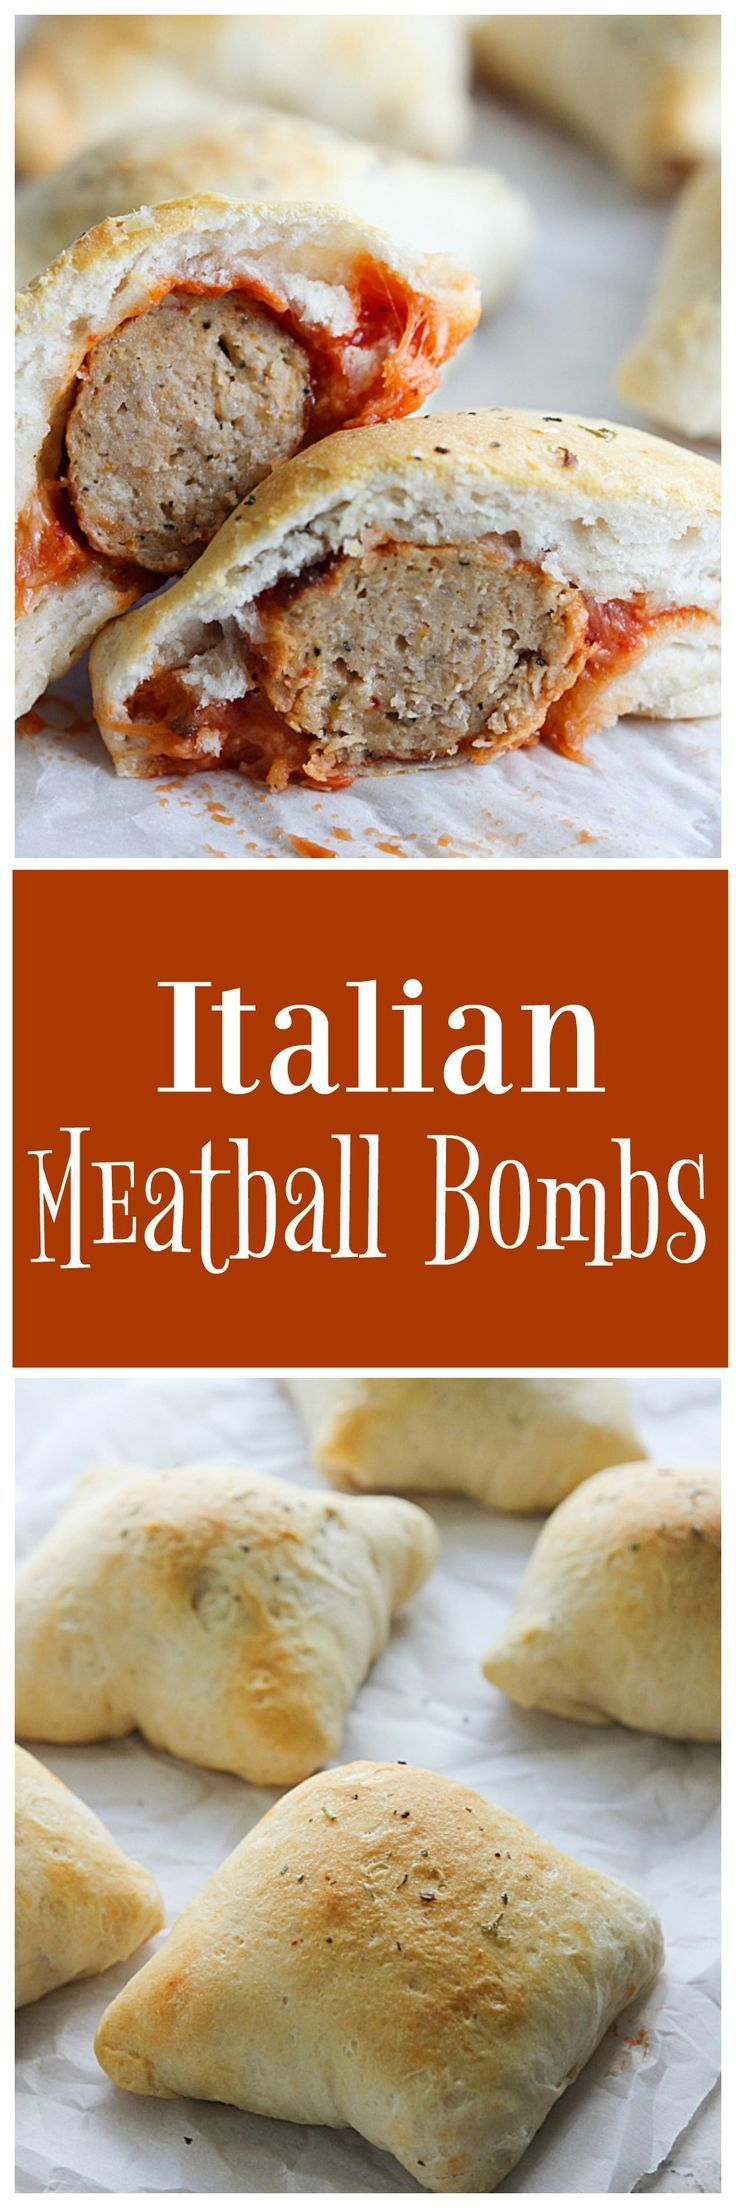 600 best alaska recipes images on pinterest conch fritters italian meatball bombs italian food recipesitalian forumfinder Image collections